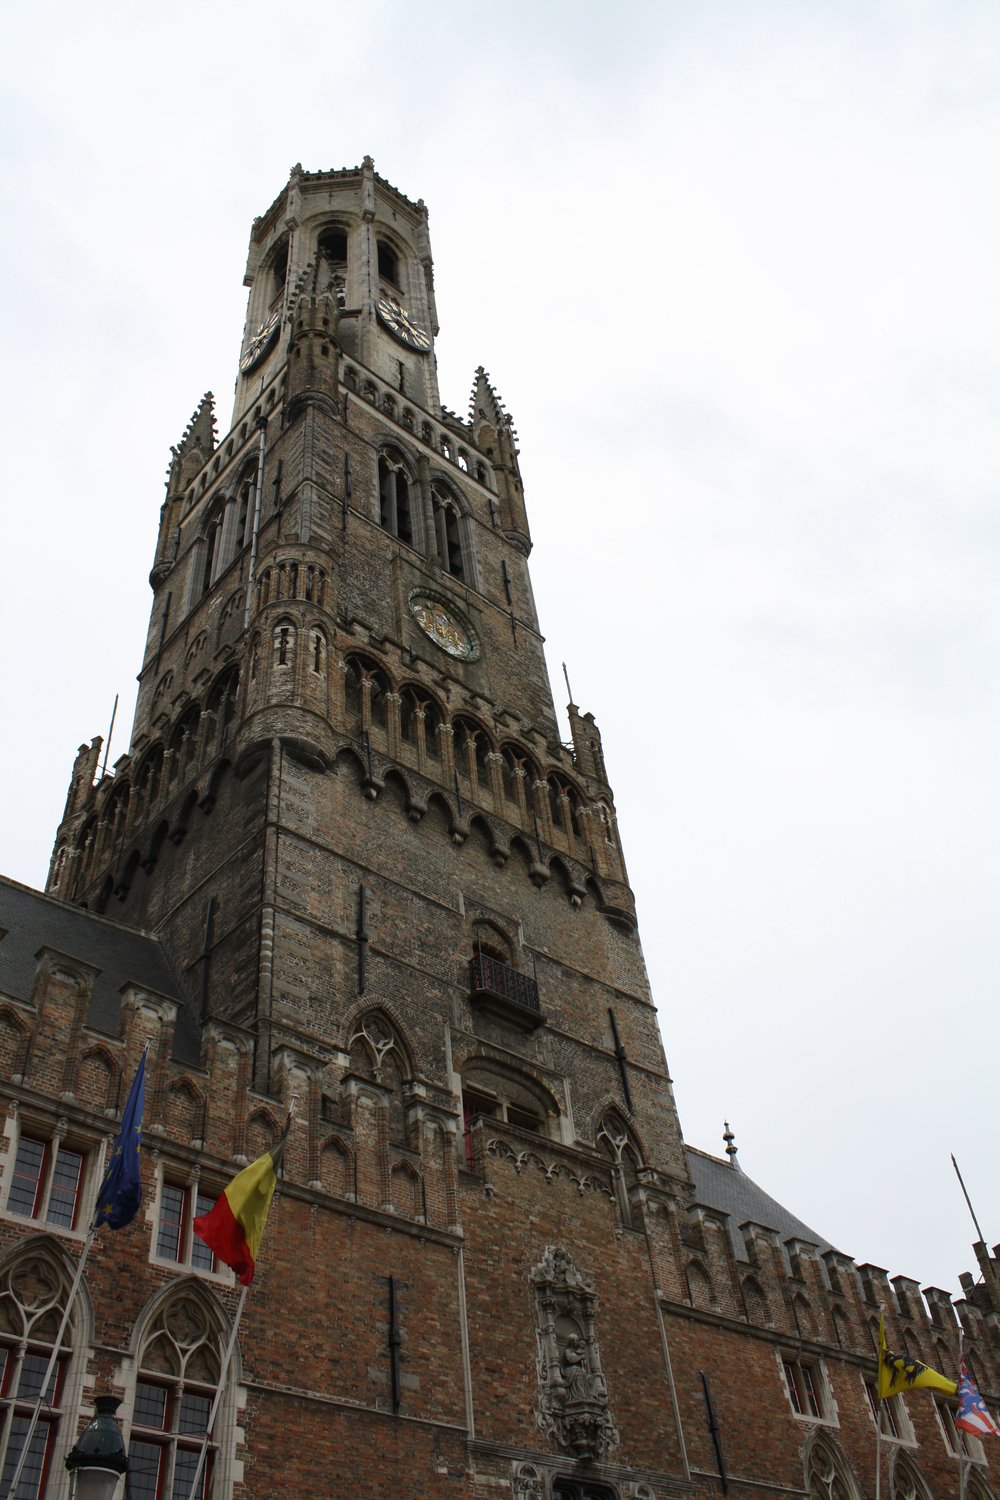 The Belfry, in the center of town. I didn't see Mad Eye Moody on it (see In Bruges!).